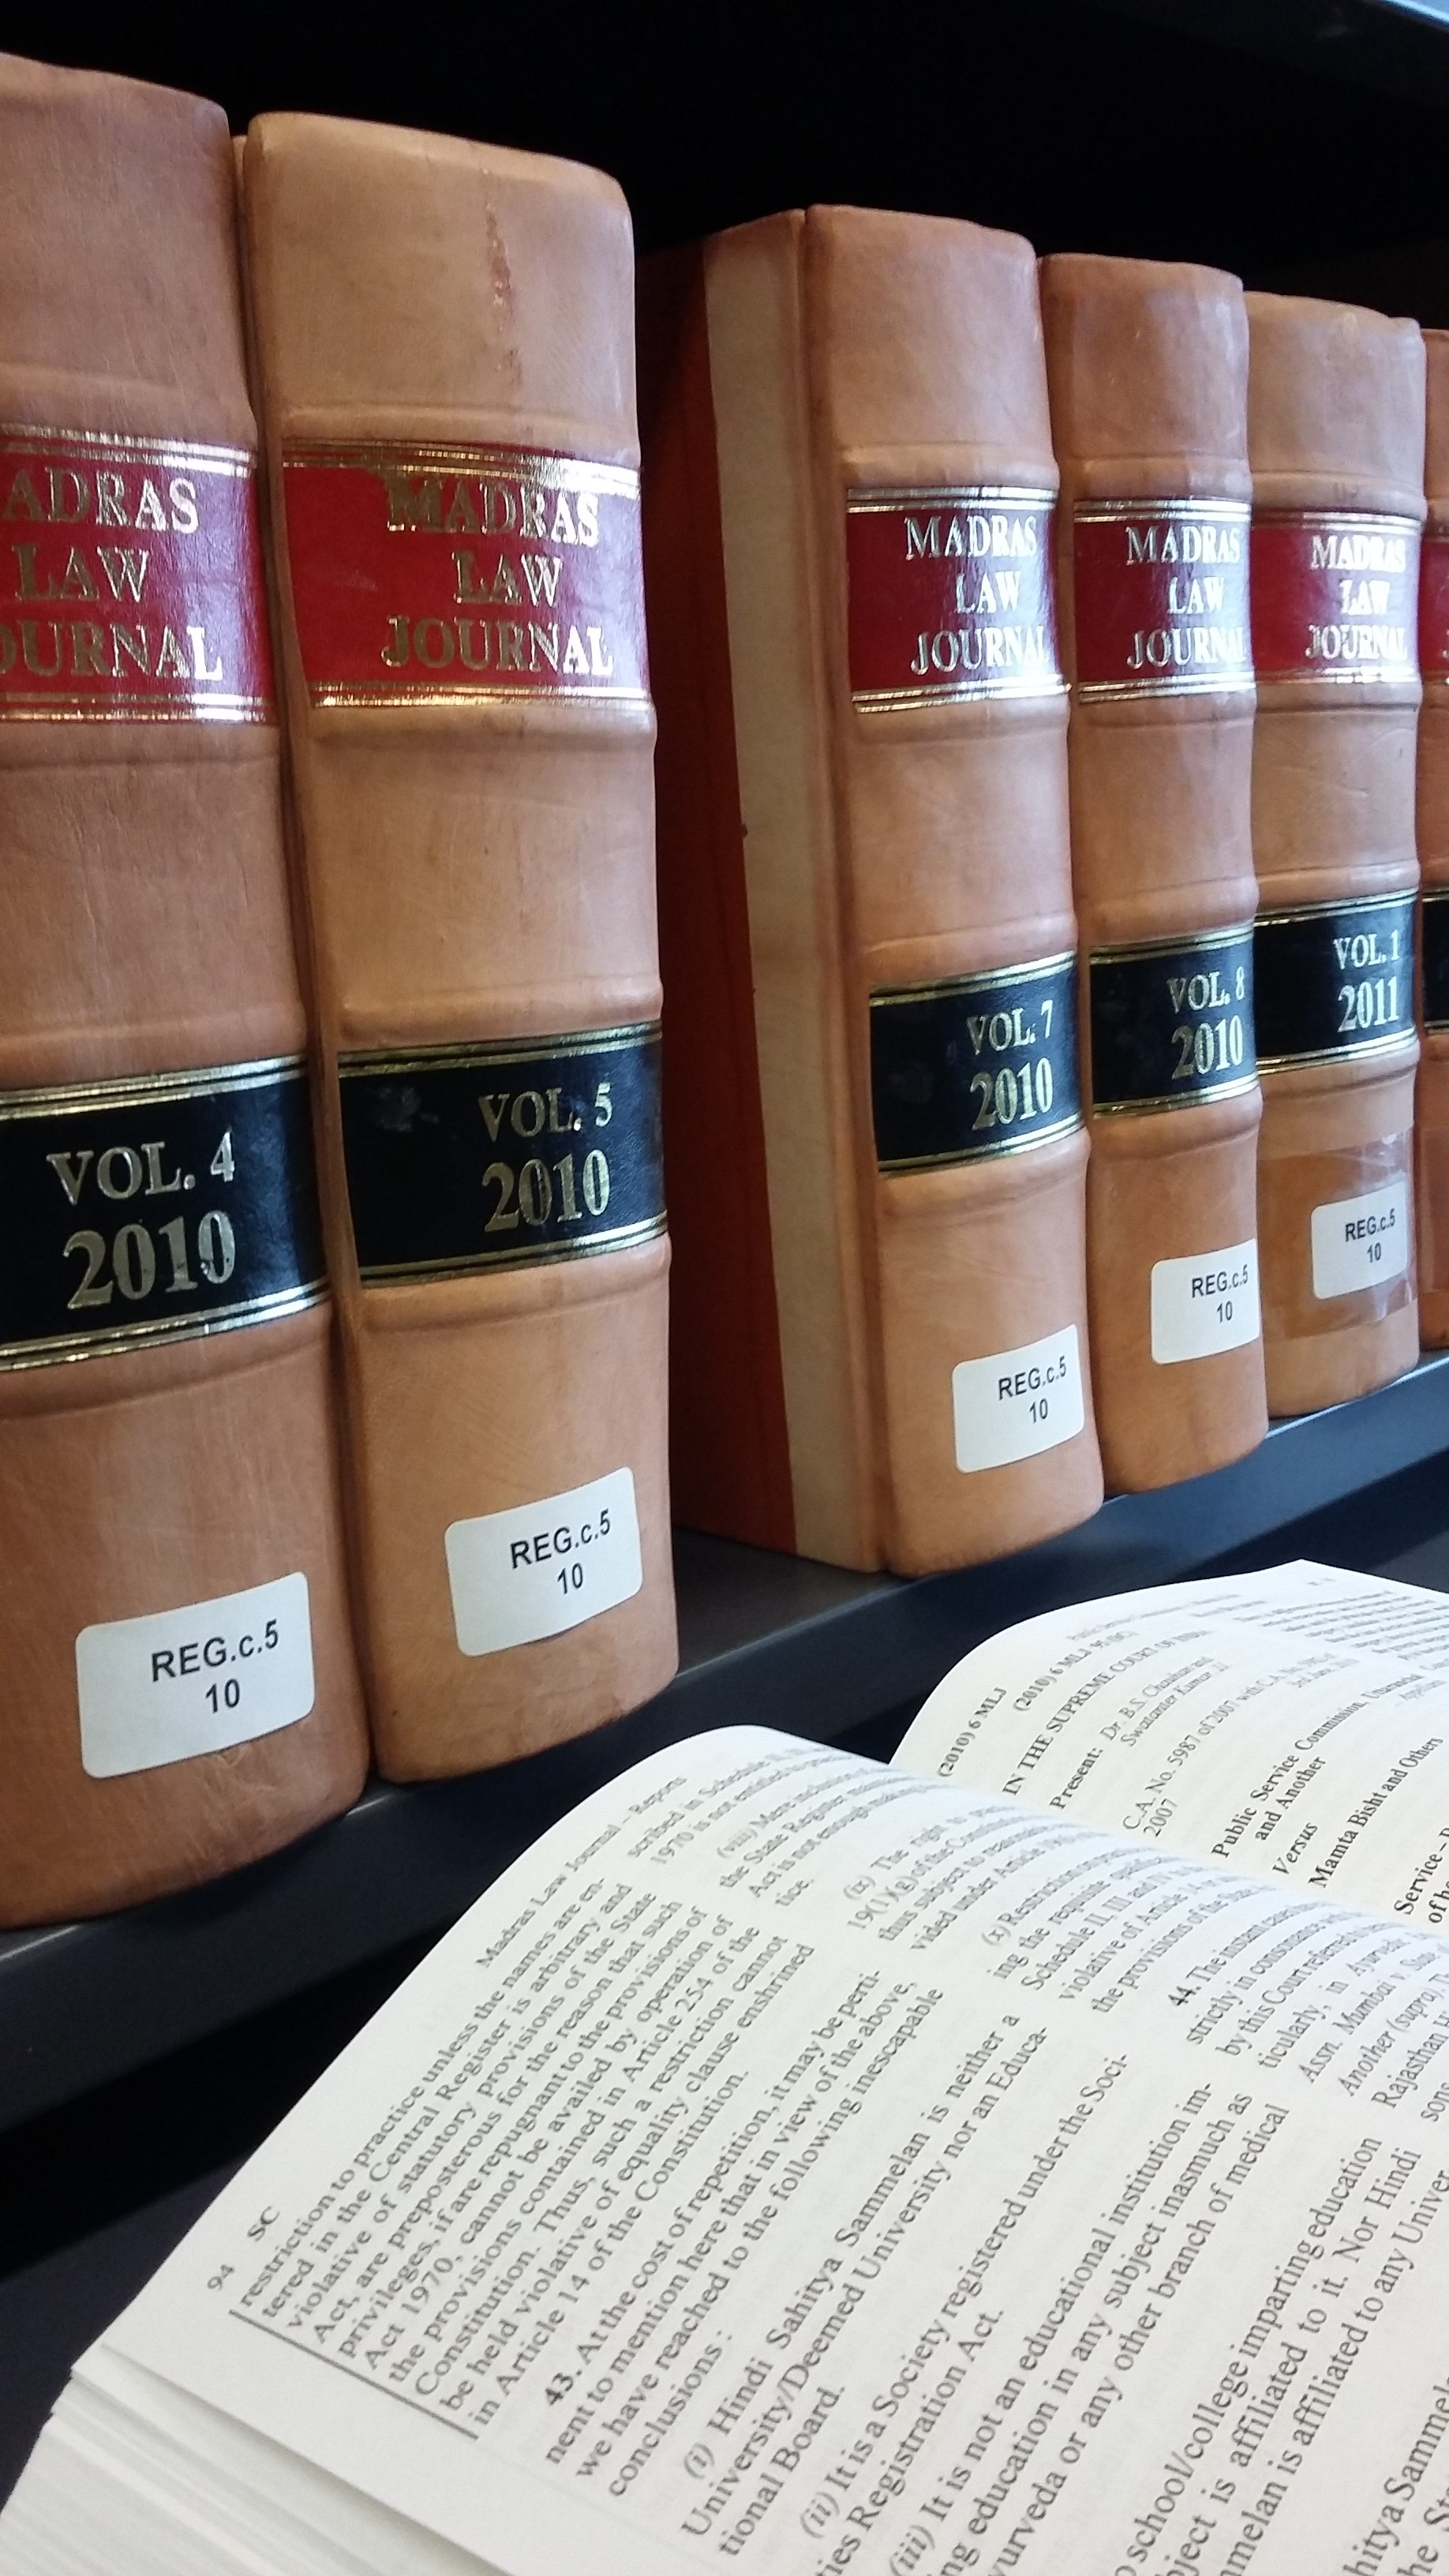 Picture of the Madras Law Journal on a shelf in the Squire Law Library with an open volume in front. The volumes look very grand in bound tan leather, with gold lettering on red and black backgrounds.